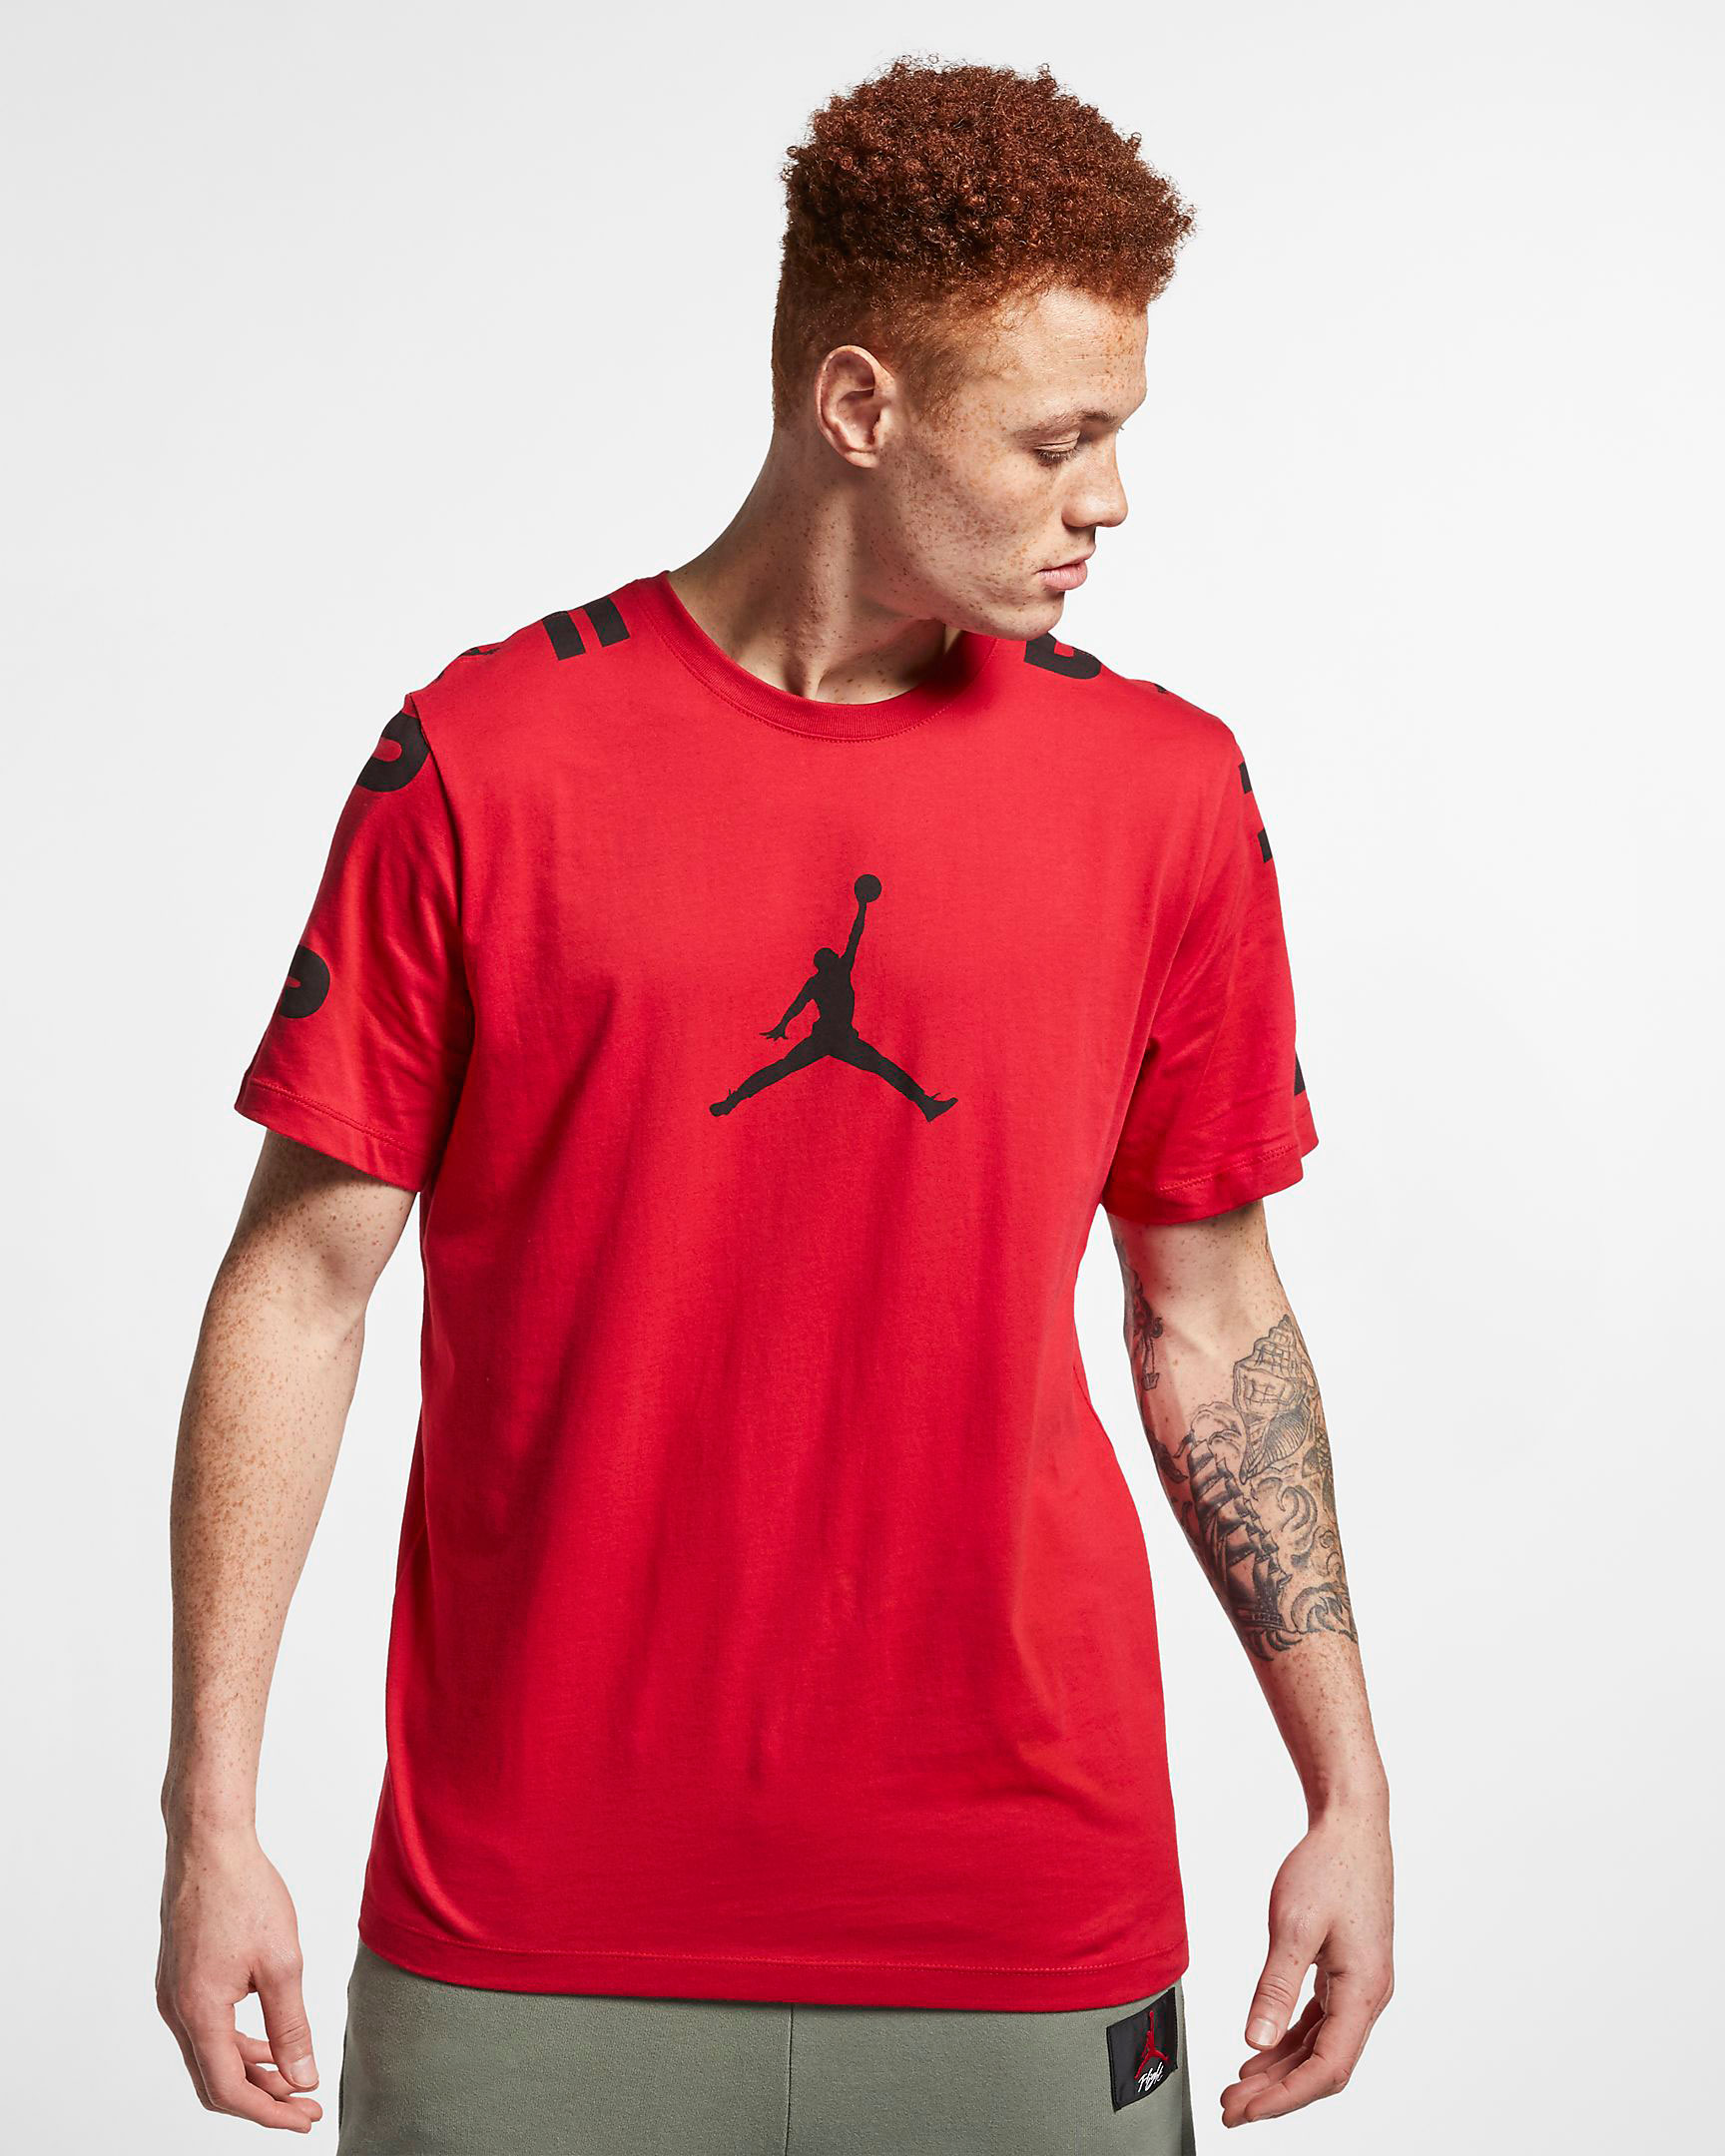 air-jordan-3-tinker-air-max-1-shirt-match-4